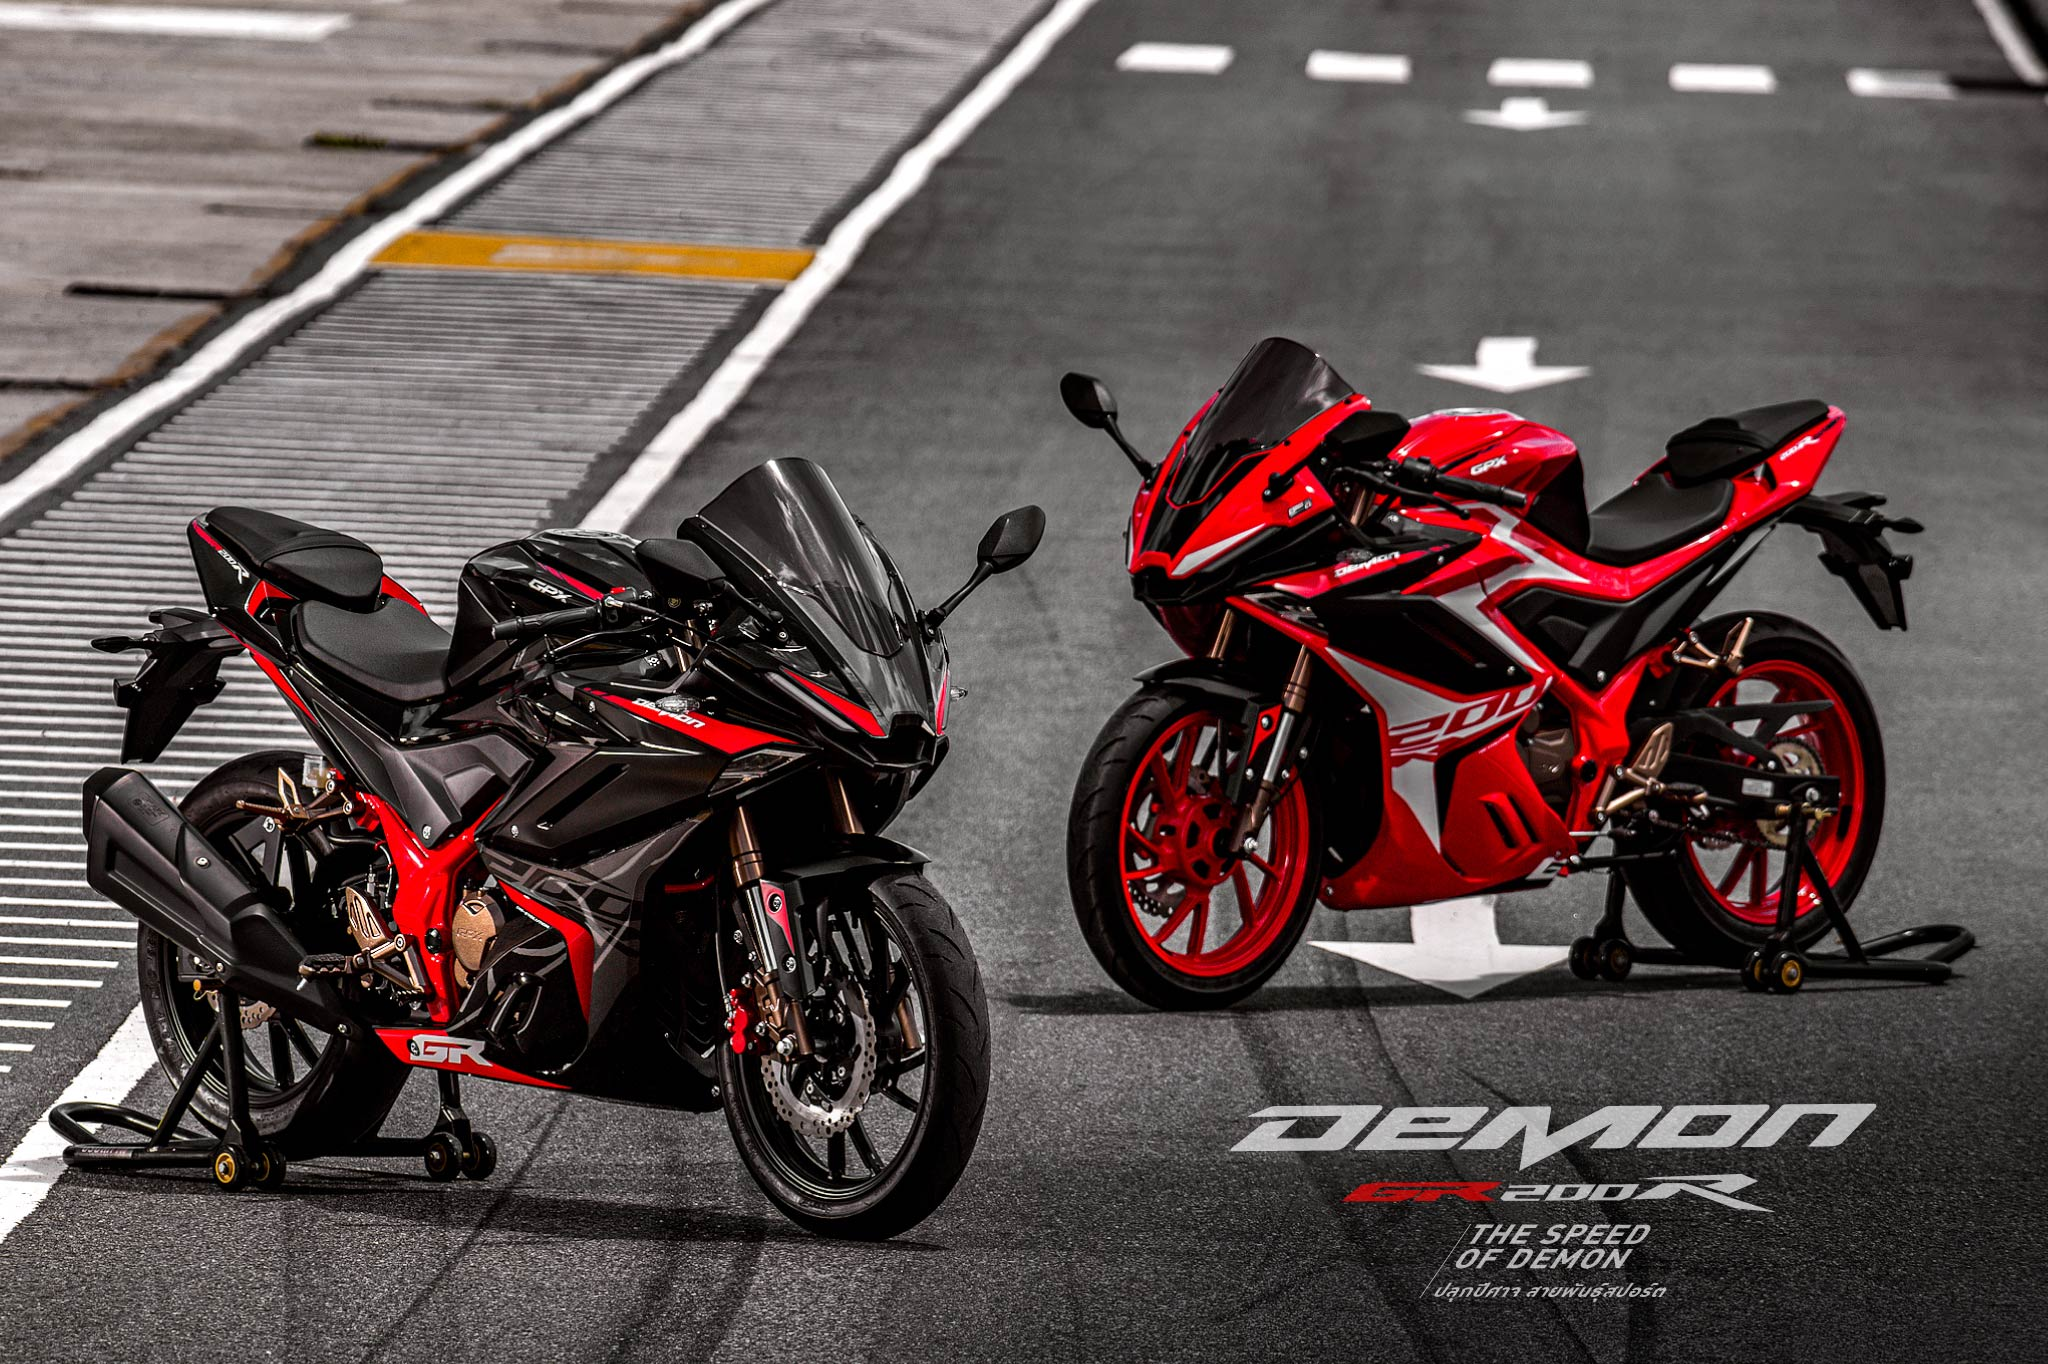 GPX Demon GR200R & Legend 250 Twin are launching in Malaysia soon